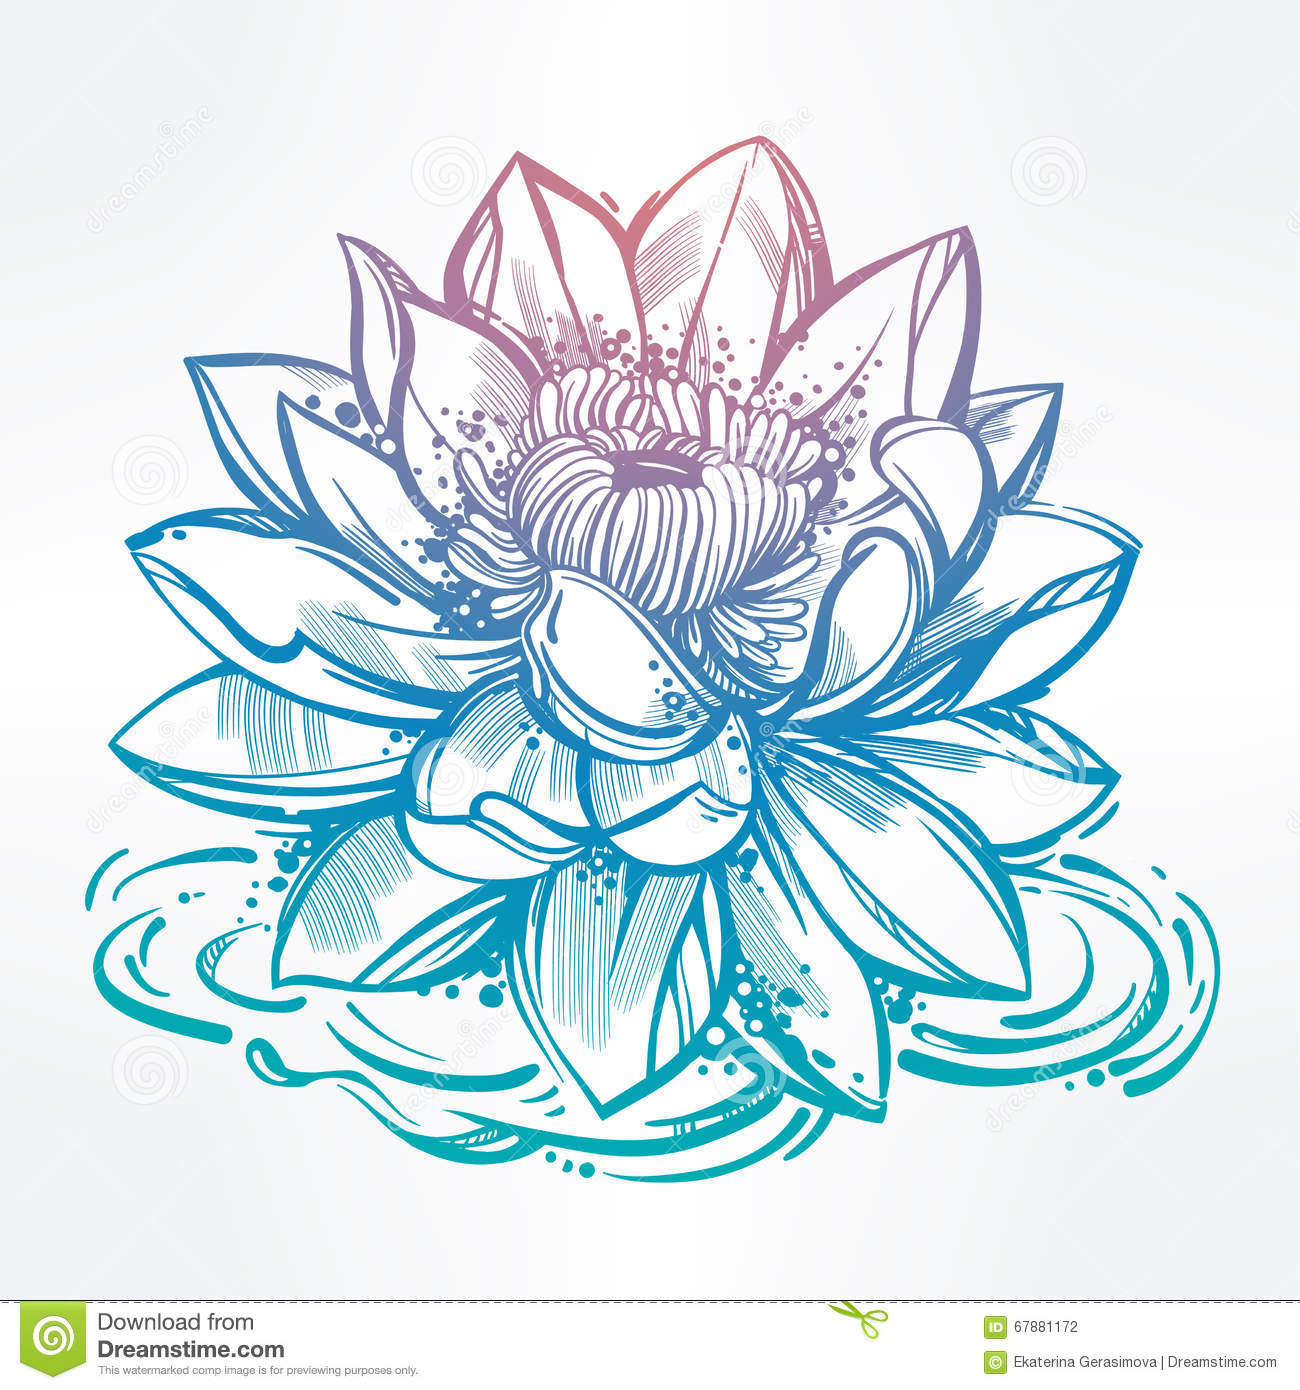 Lotus flower drawing sketch at getdrawings free for personal 1300x1390 lotus flower drawing sketch lotus flower tattoo sketch sketch of mightylinksfo